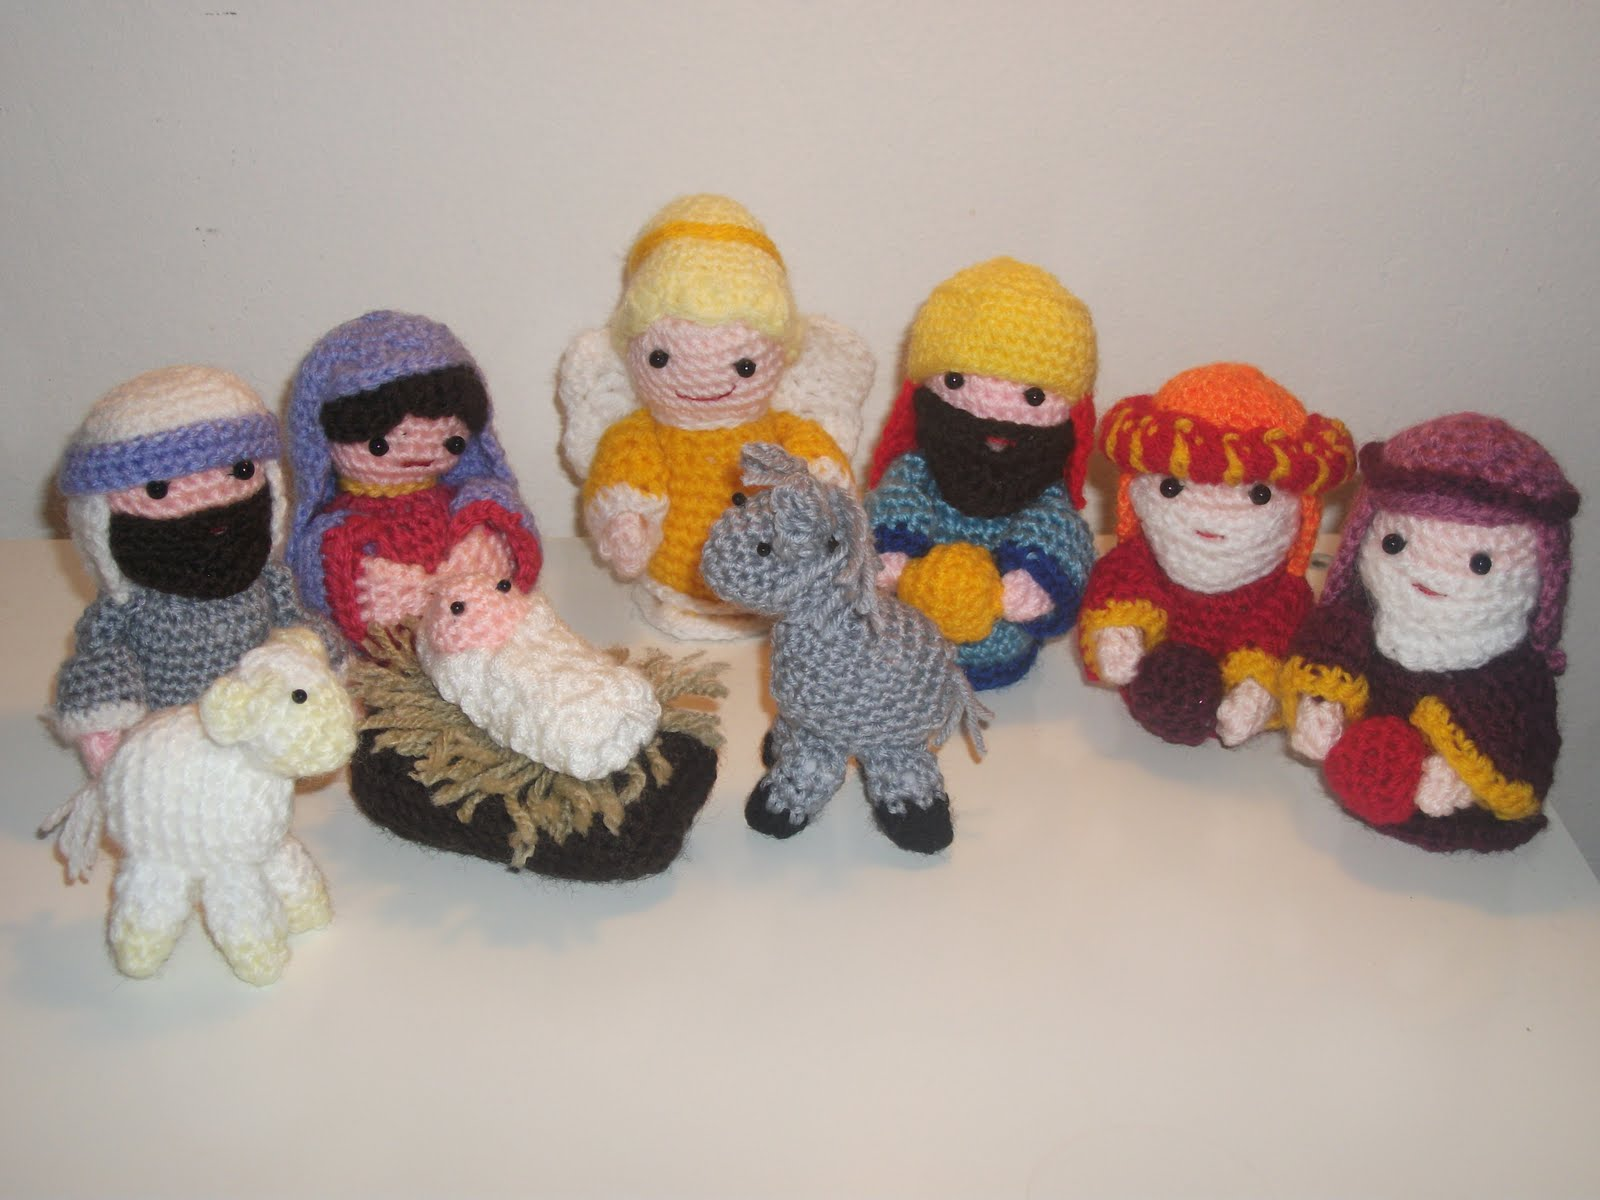 Crochet Patterns Nativity Scene : Crochet Nativity Scene Free Pattern Search Results ...